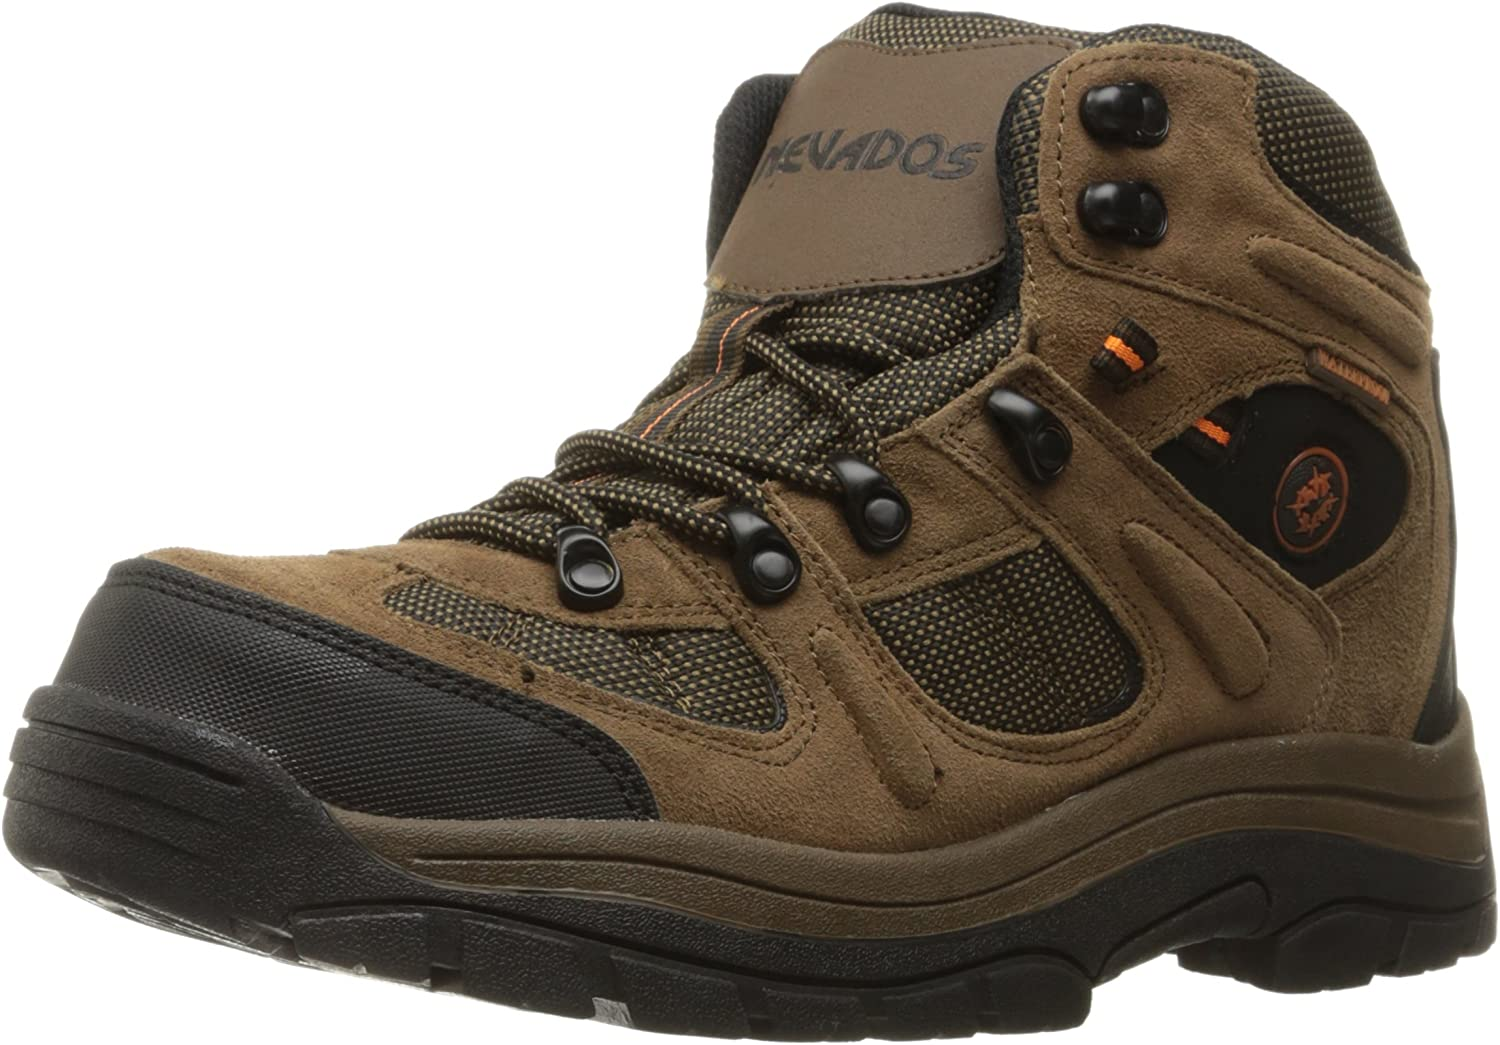 Nevados Men's Klondike Mid Waterproof Hiking Boot